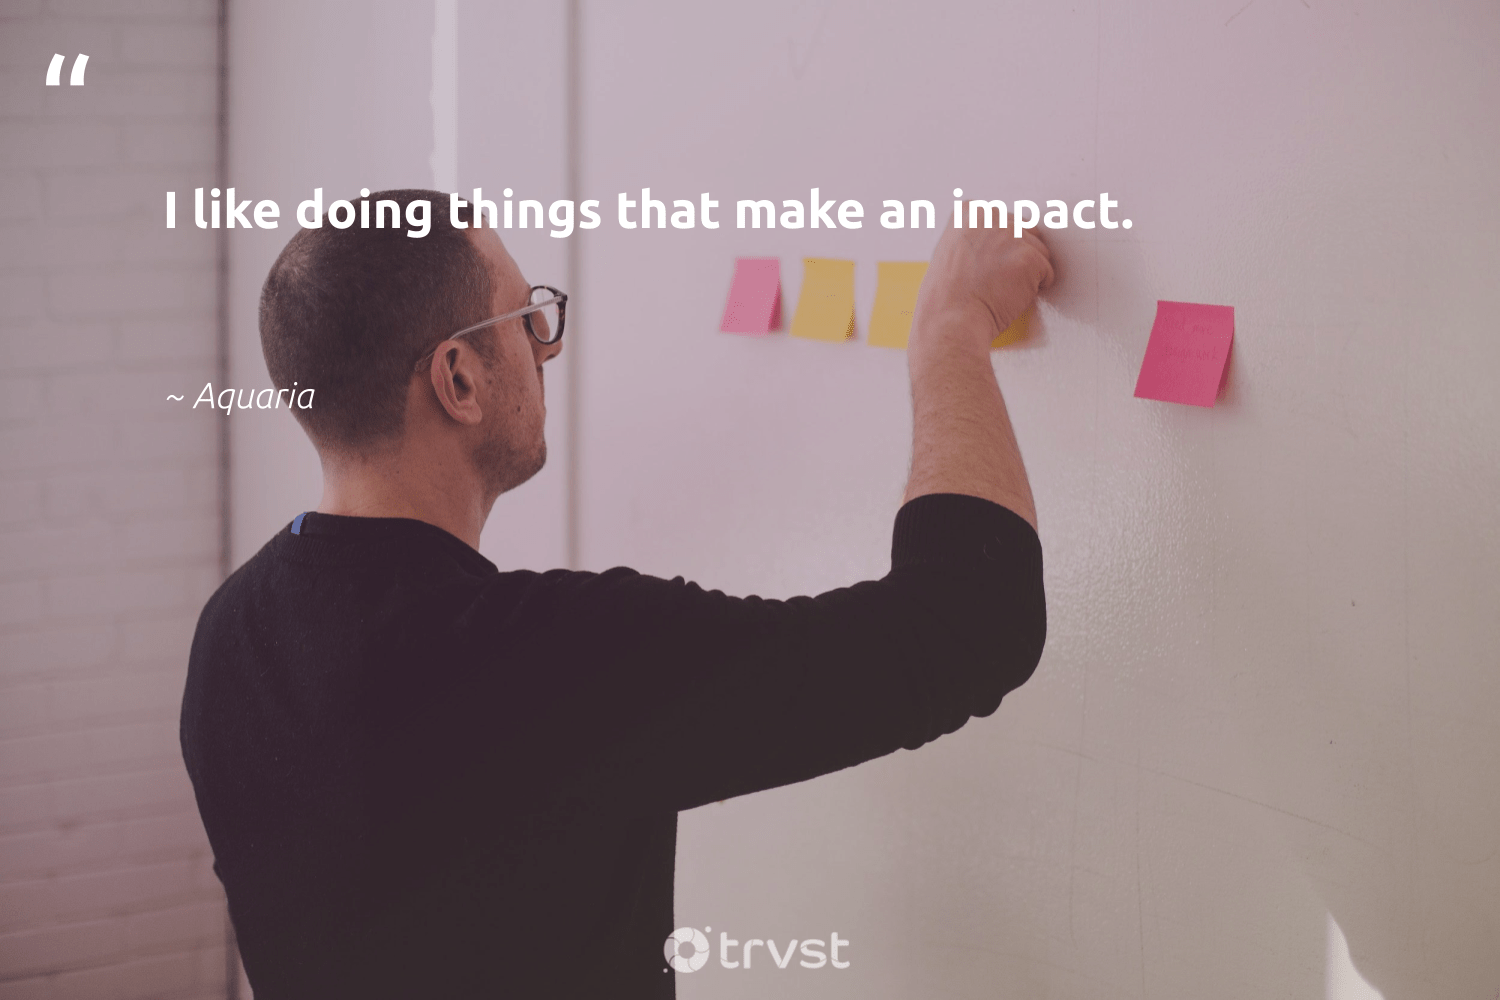 """I like doing things that make an impact.""  - Aquaria #trvst #quotes #impact #giveback #takeaction #makeadifference #socialimpact #ethicalbusiness #bethechange #dogood #collectiveaction #weareallone"